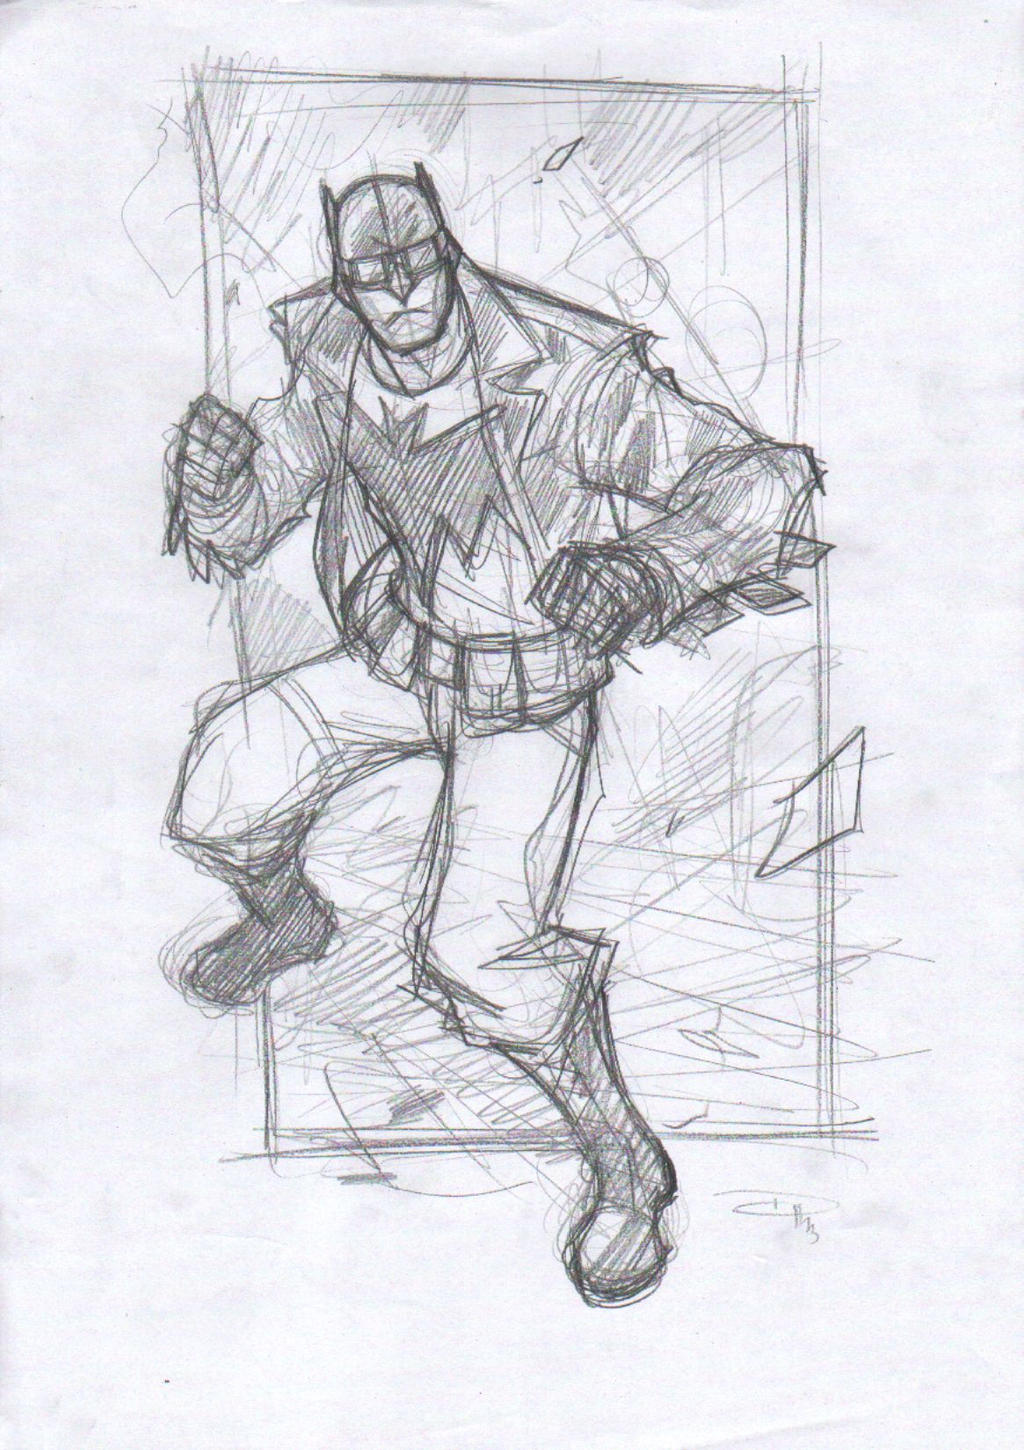 Rockabilly Batman - Sketch by DenisM79